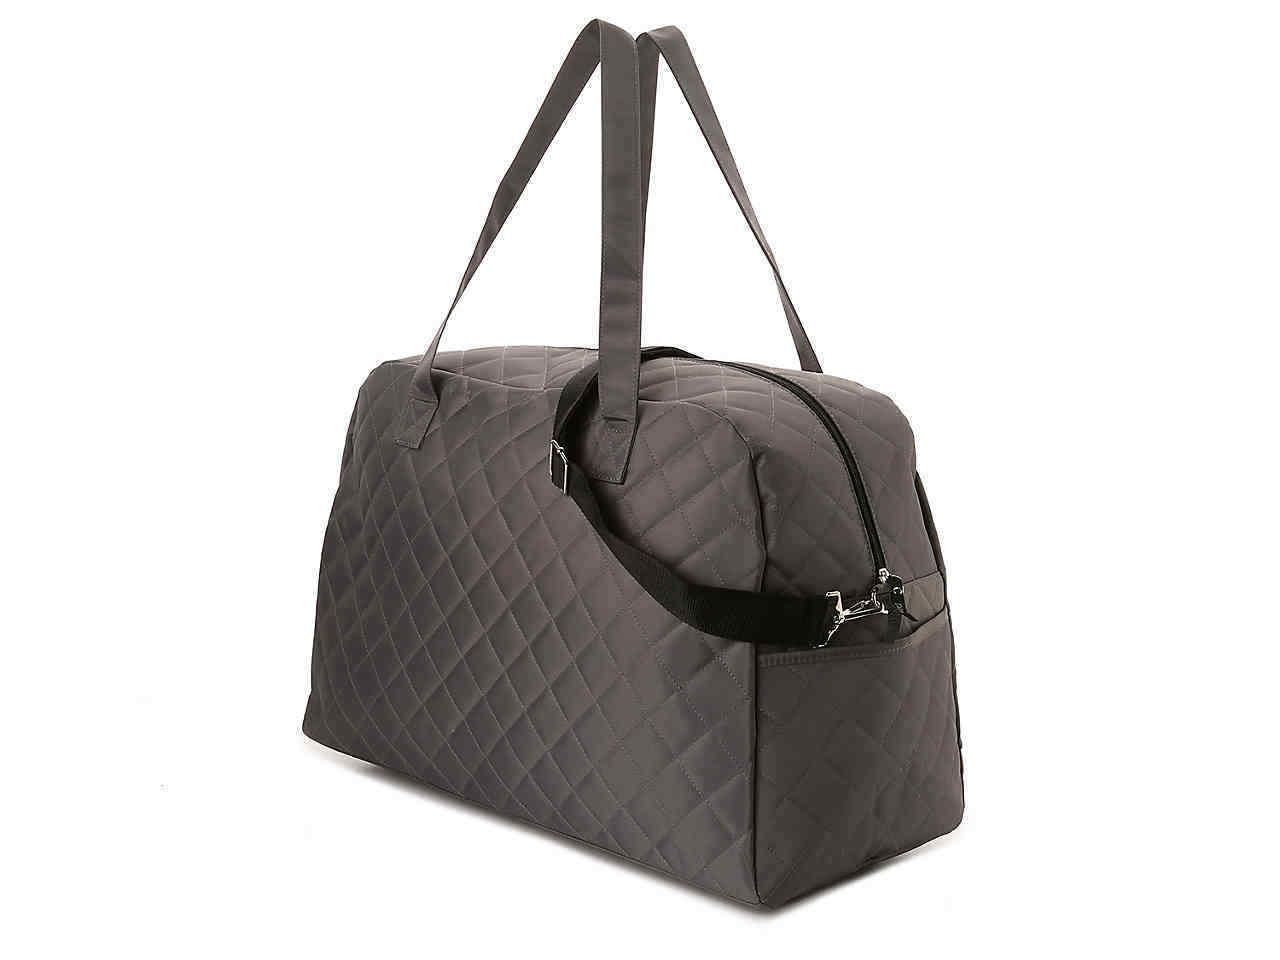 DSW QUILTED TRAVEL BAG GRAY